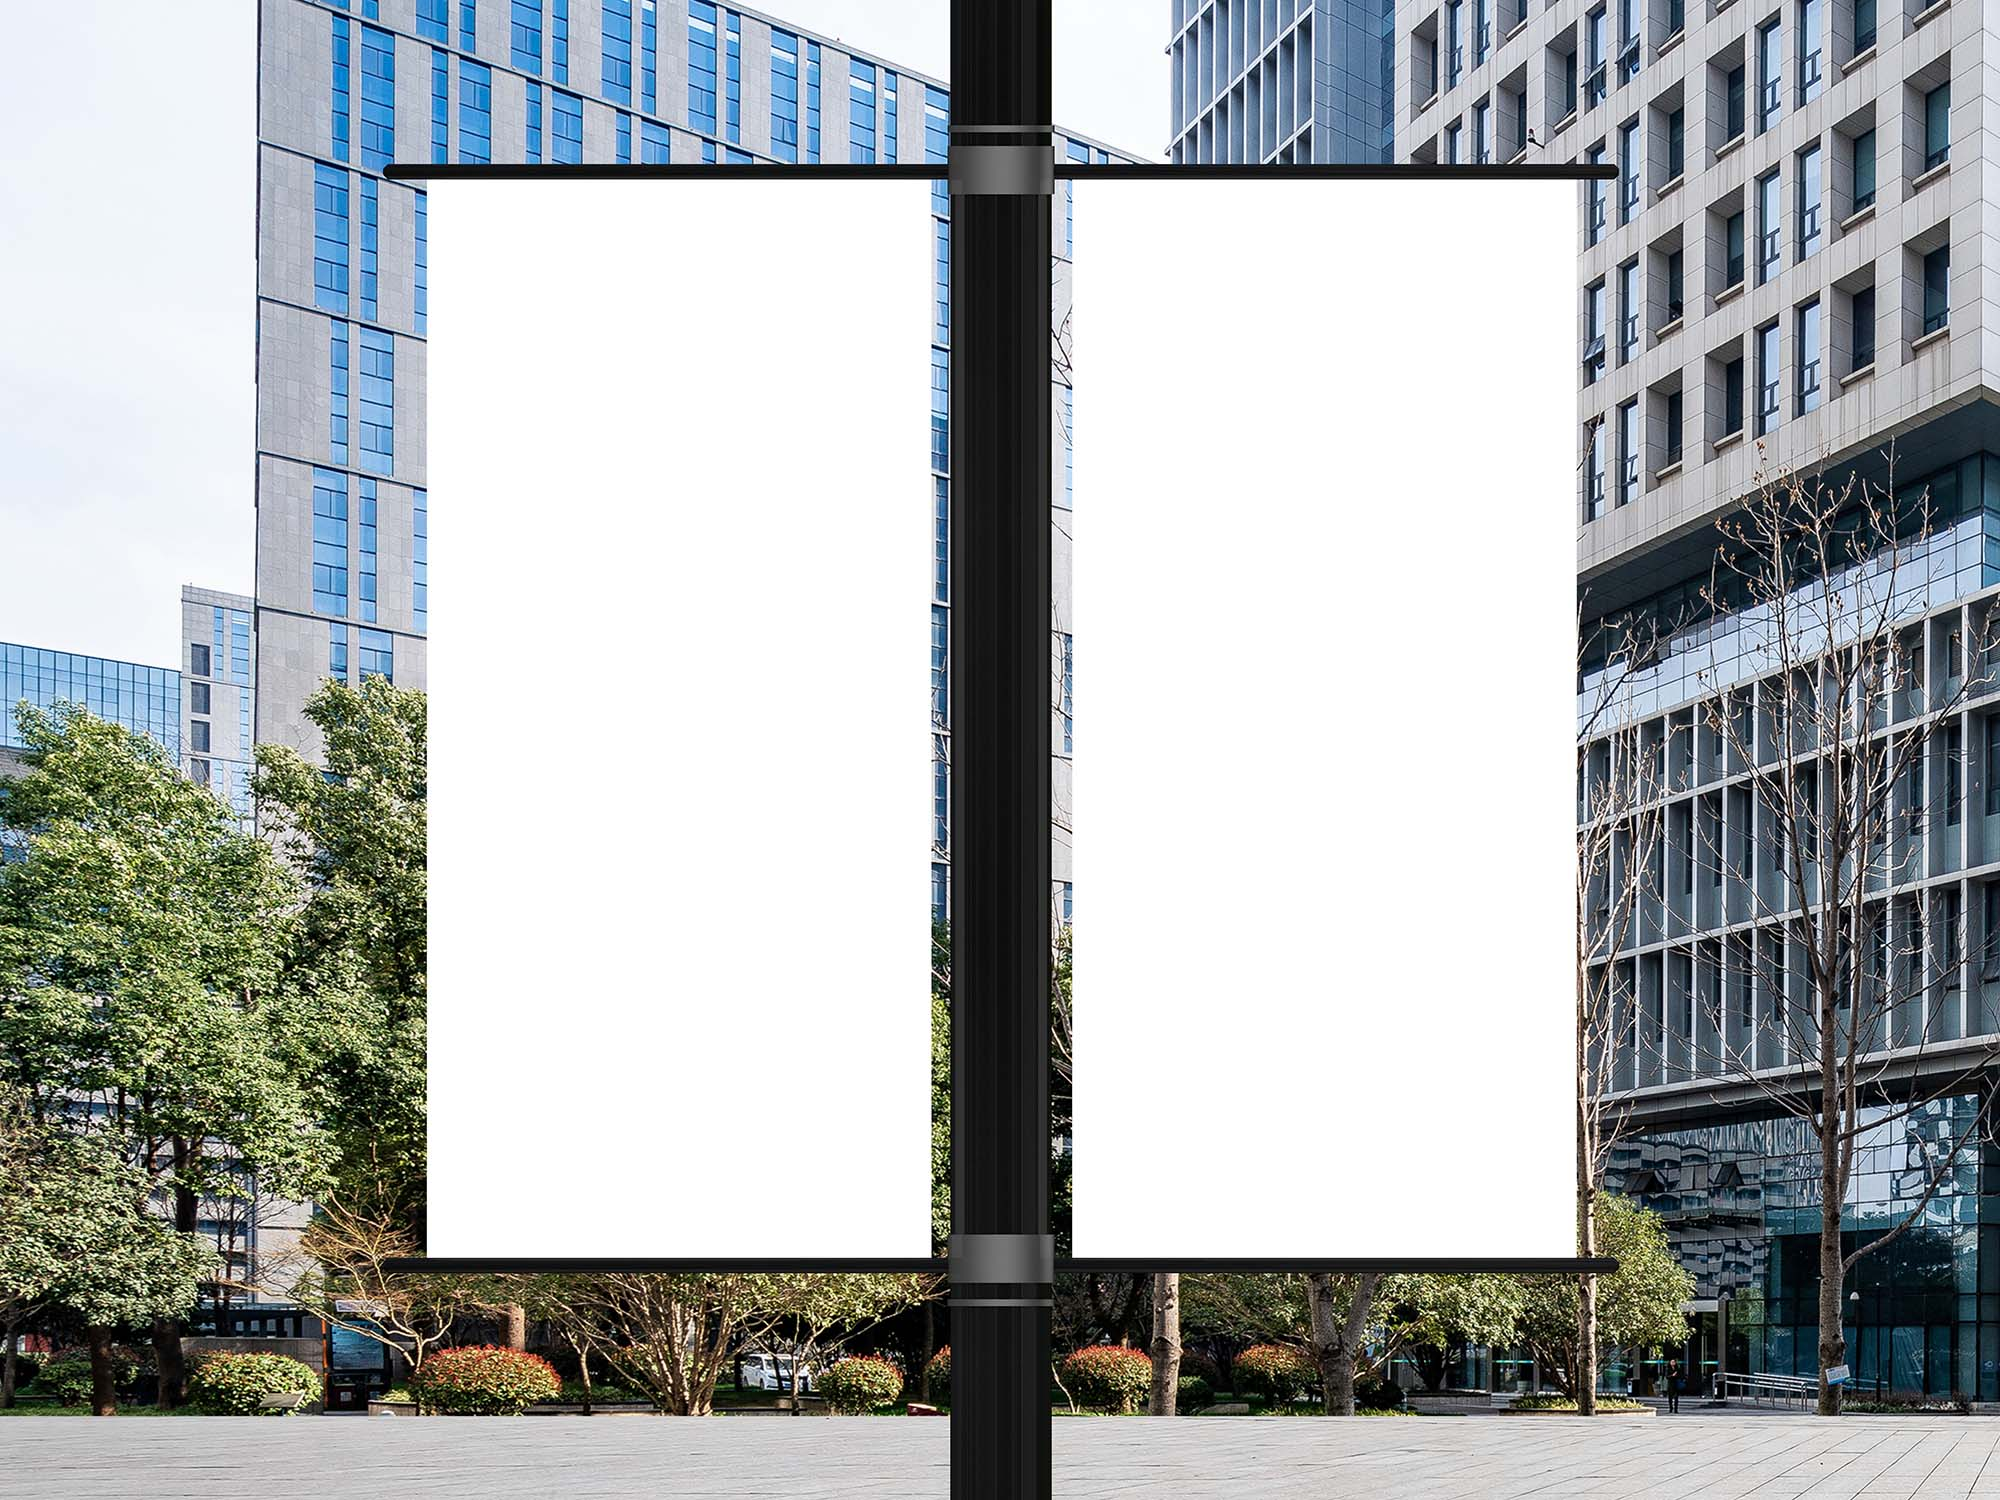 Outdoor Lamp Post Banners Mockup 2